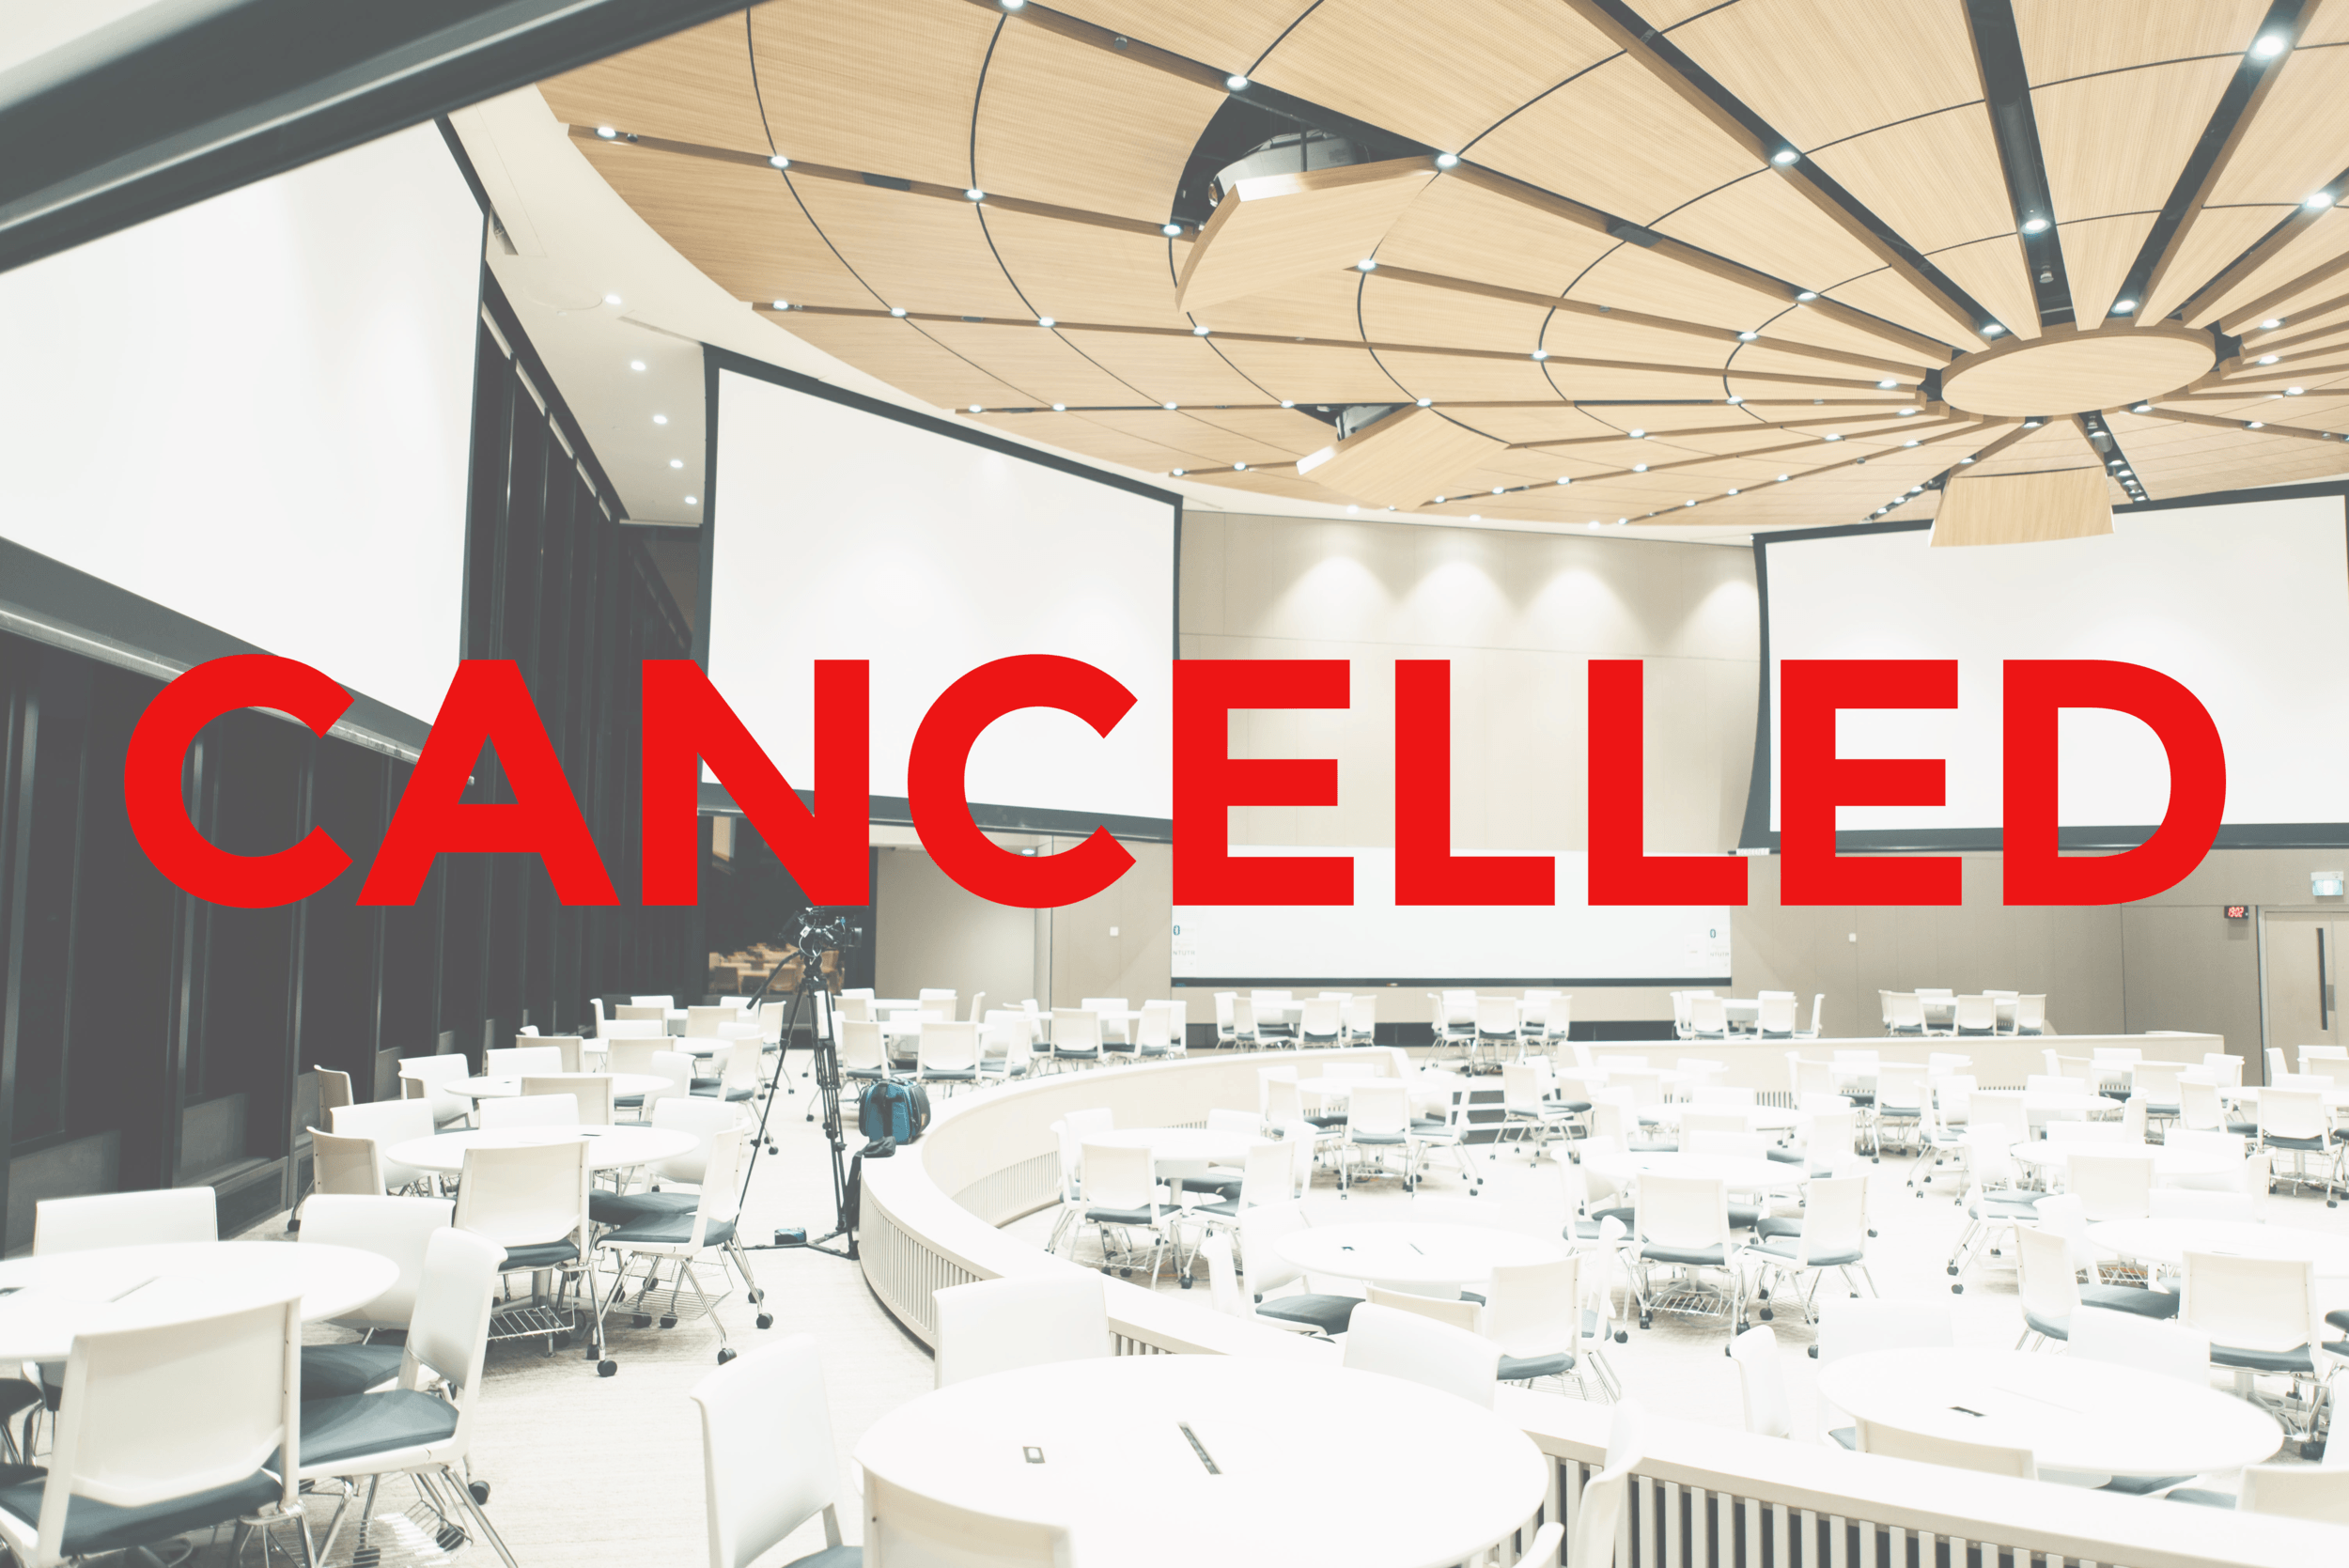 List of World Events Canceled for 2020 Due to the COVID 19 Outbreak